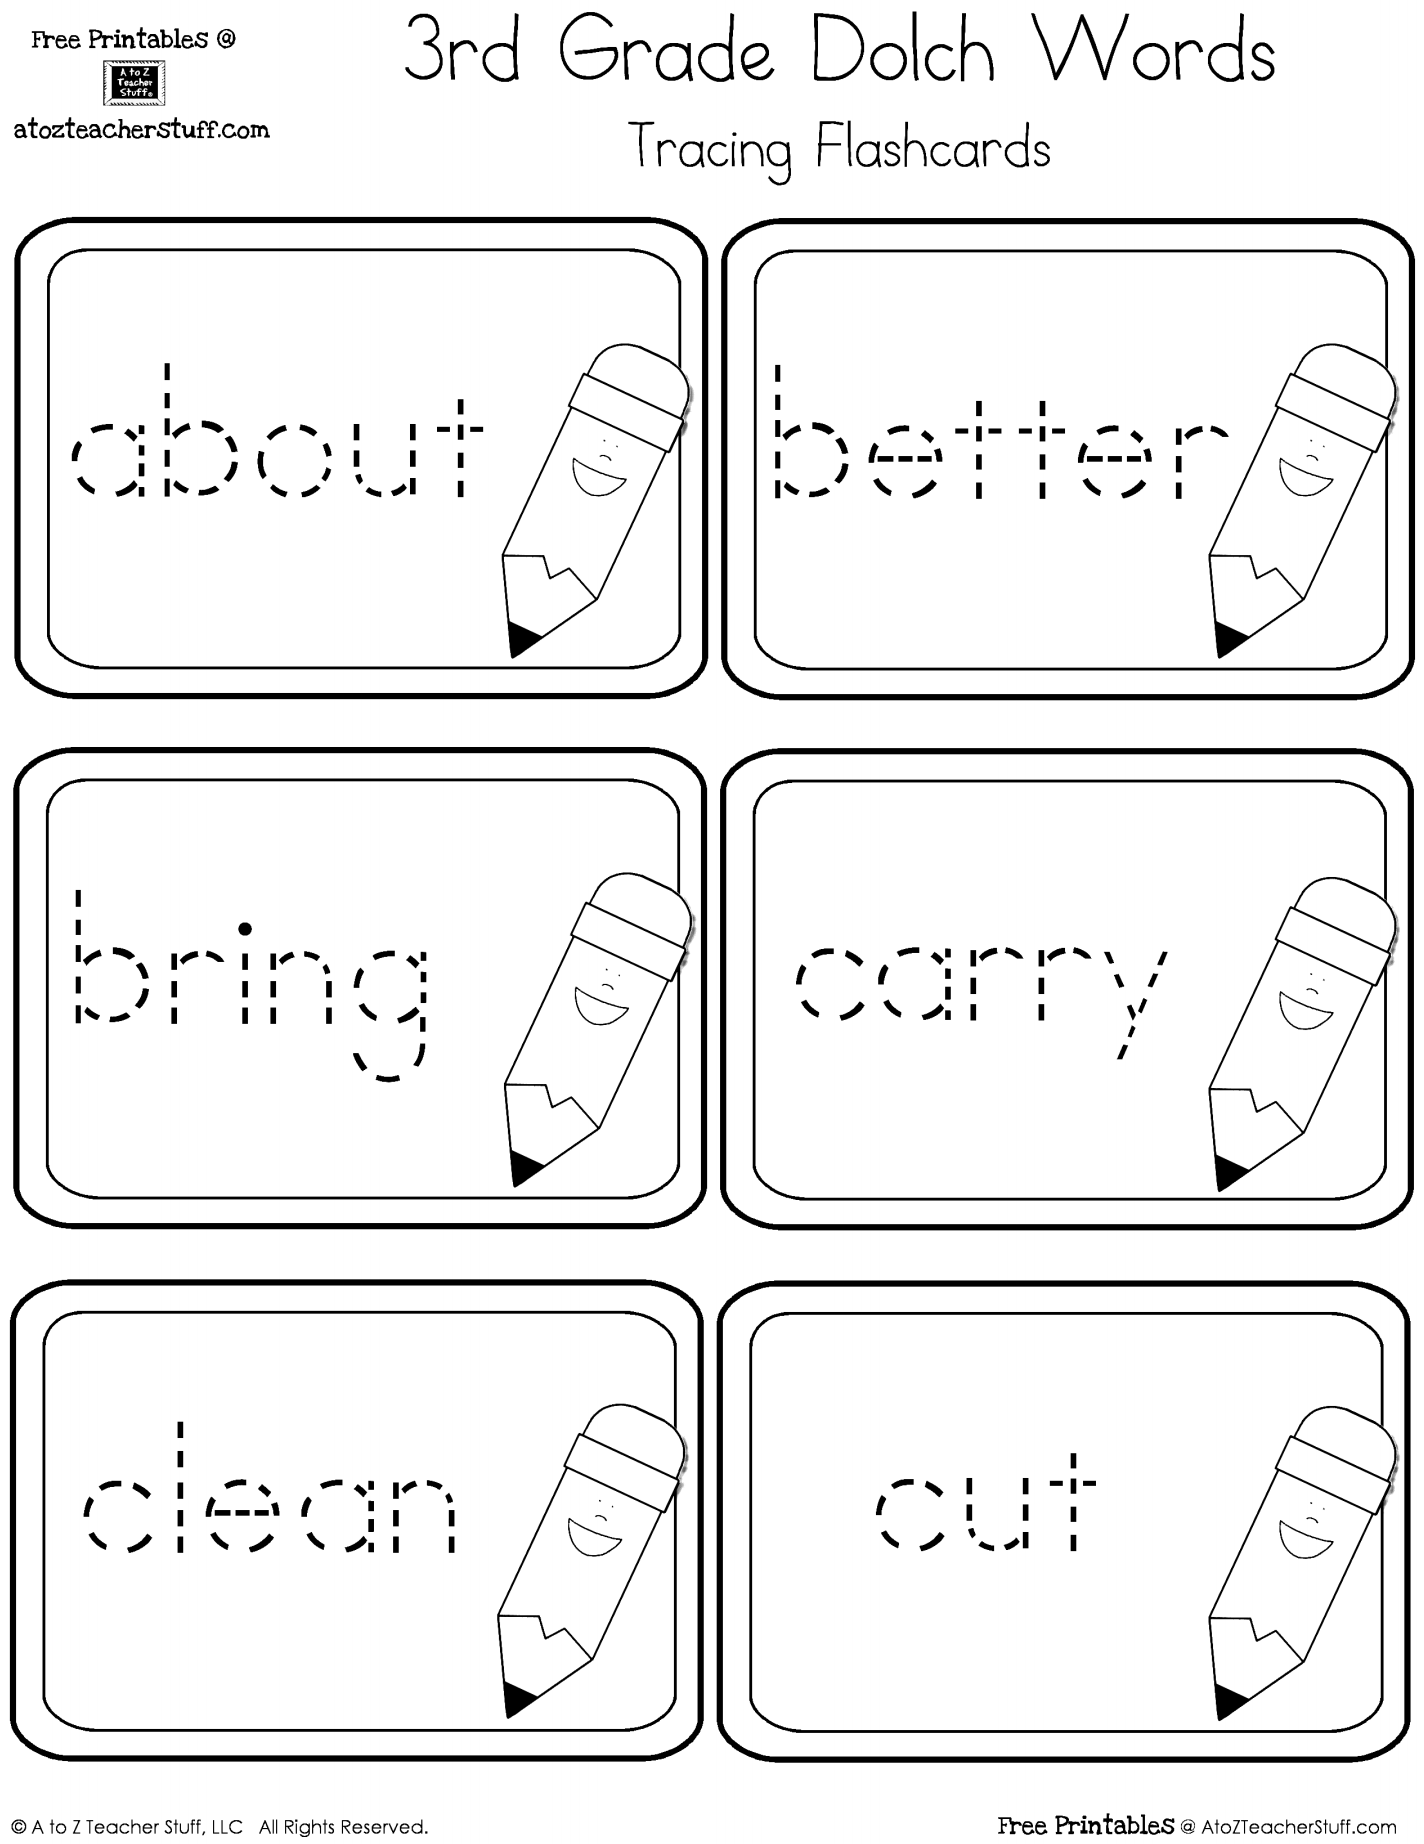 Worksheet 3rd Grade Sight Words Worksheets third grade dolch sight words tracing flashcards a to z teacher 3rd cards free printables